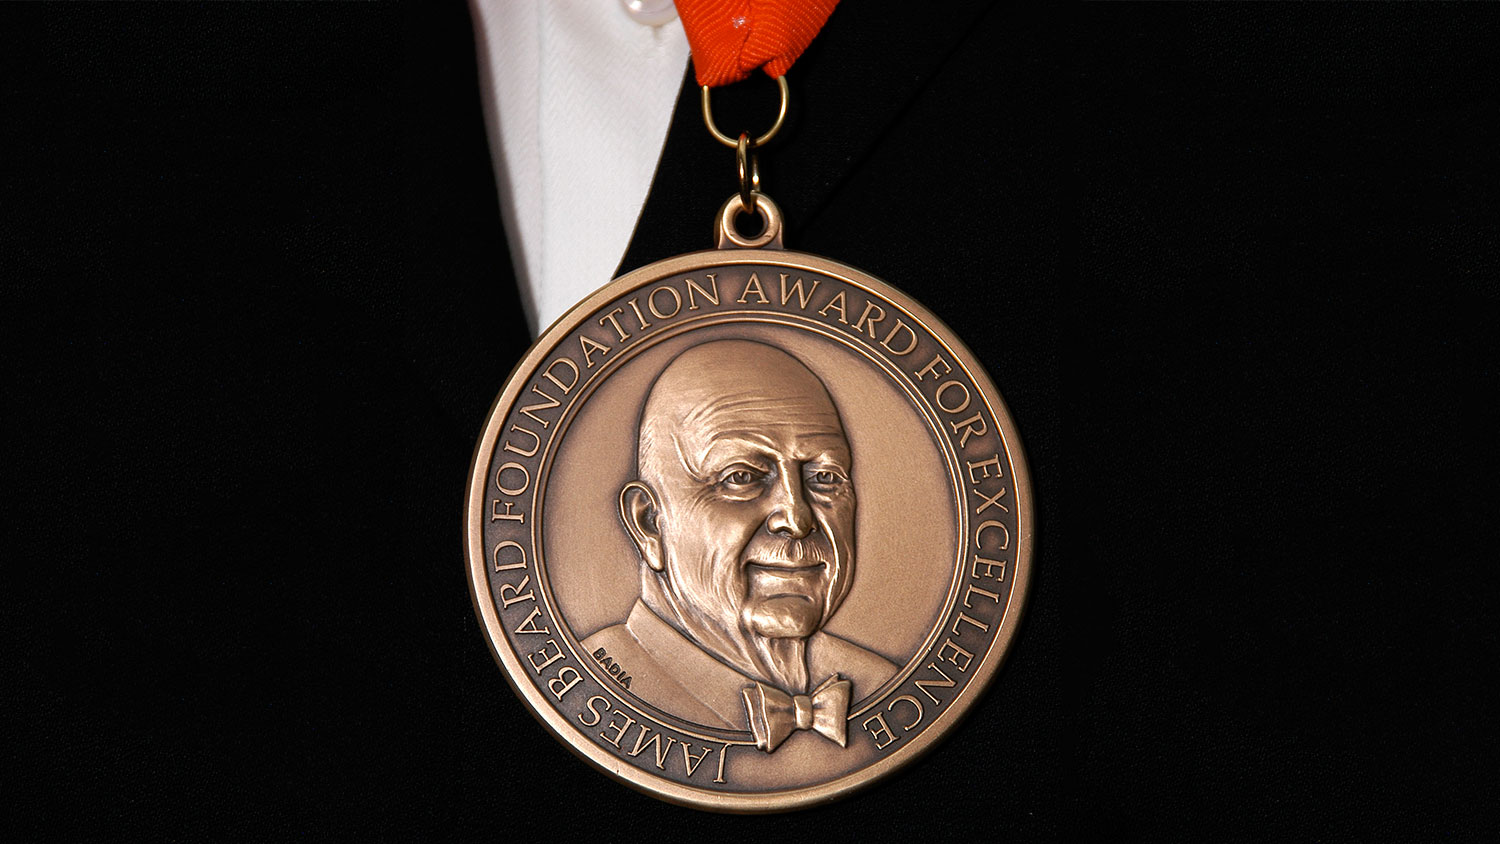 These 5 Restaurants Deemed 'American Classics' by James Beard Foundation